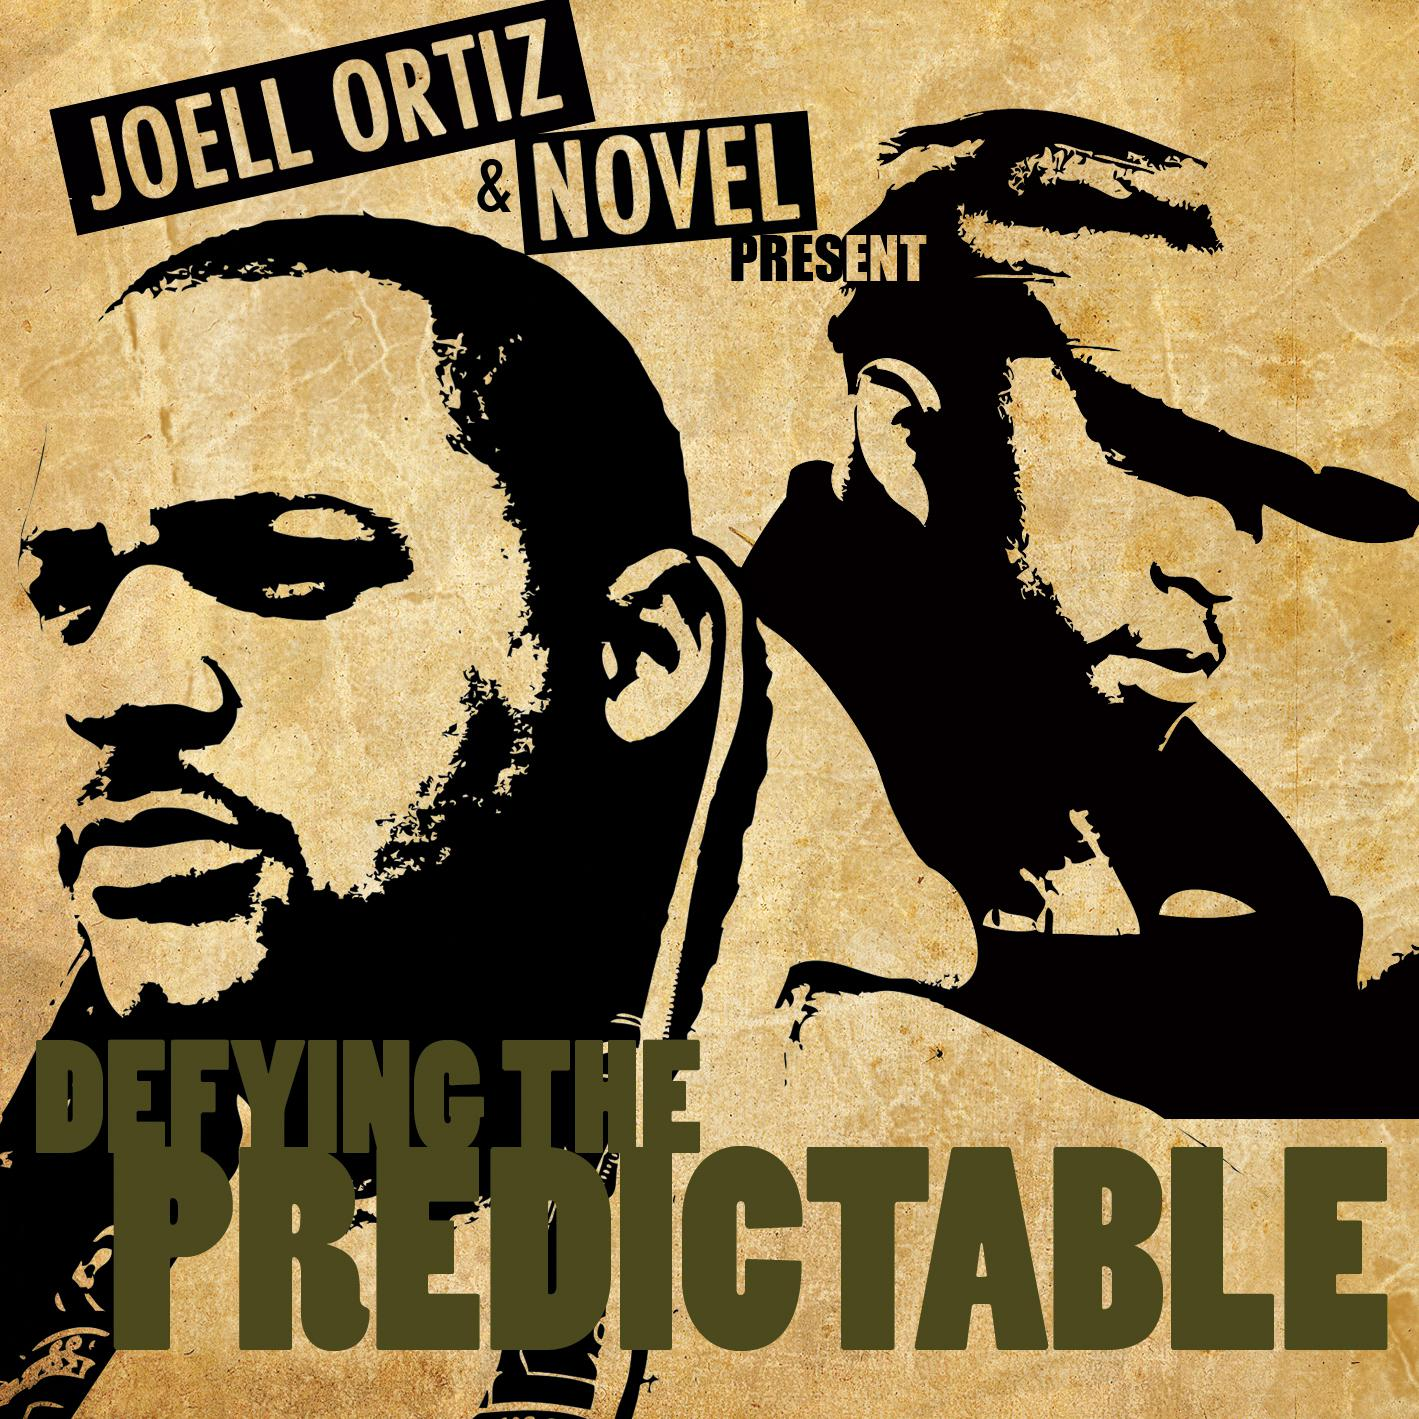 Joell Ortiz & Novel - Defying The Predictable אלבום להורדה